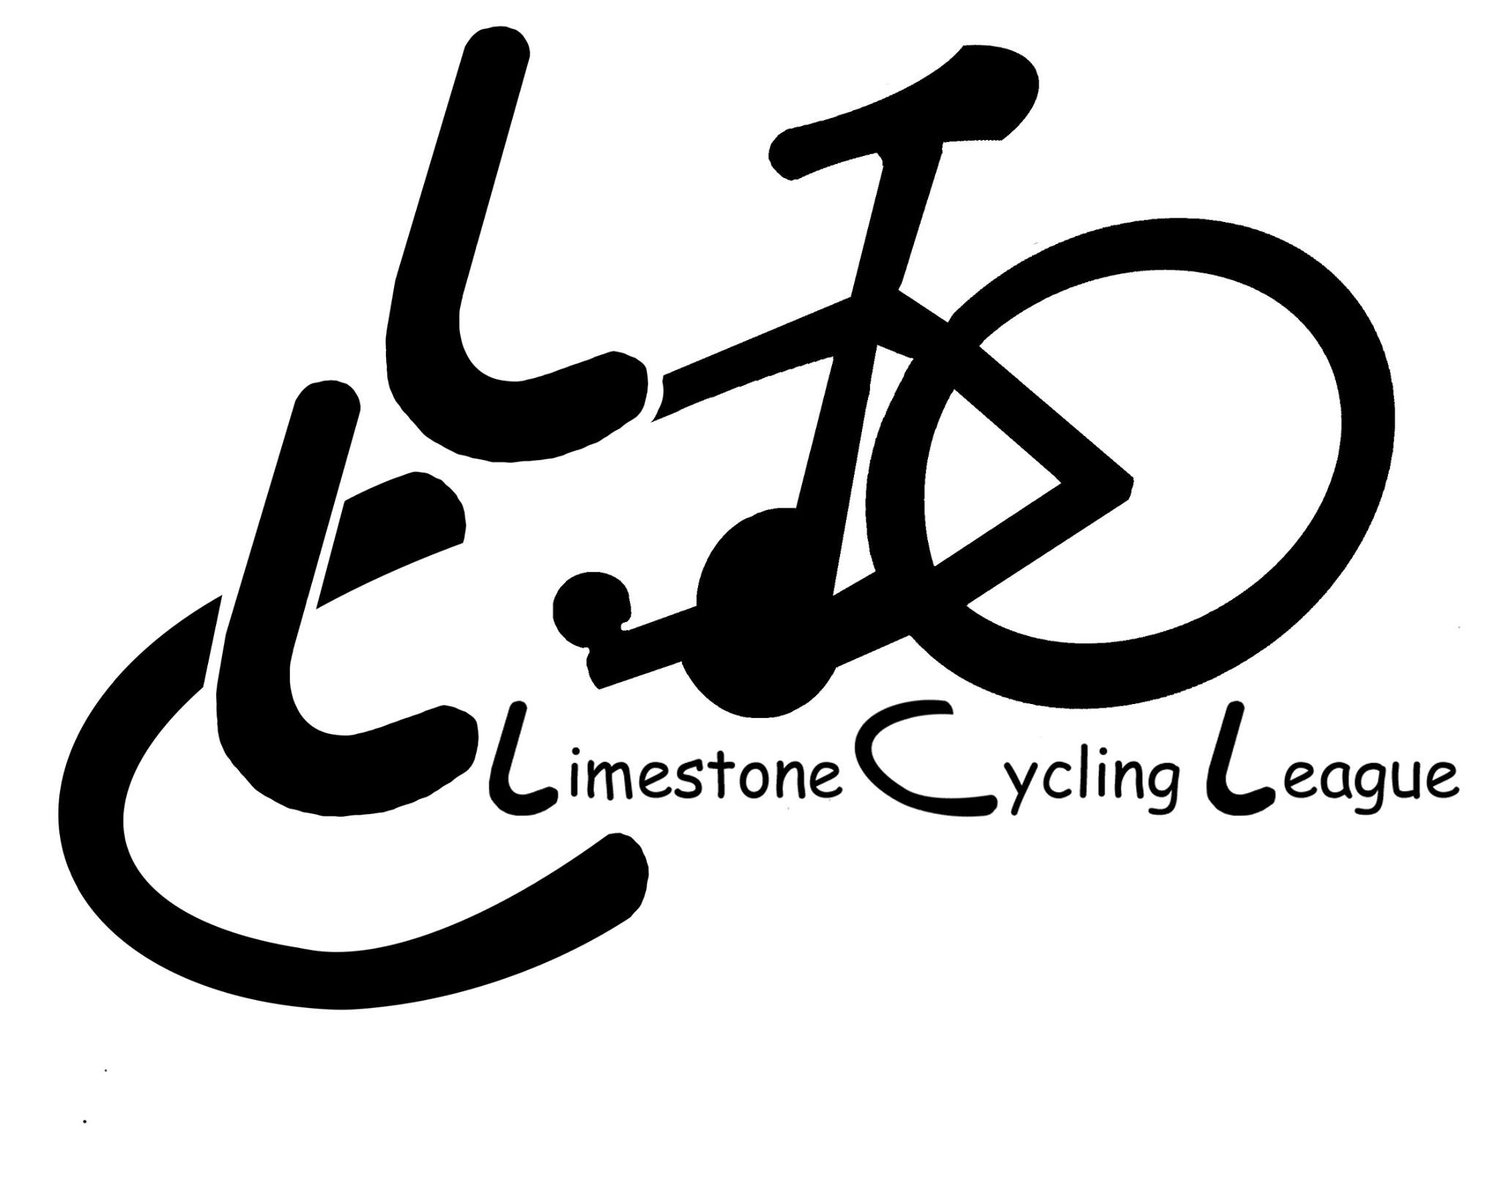 Limestone Cycling League